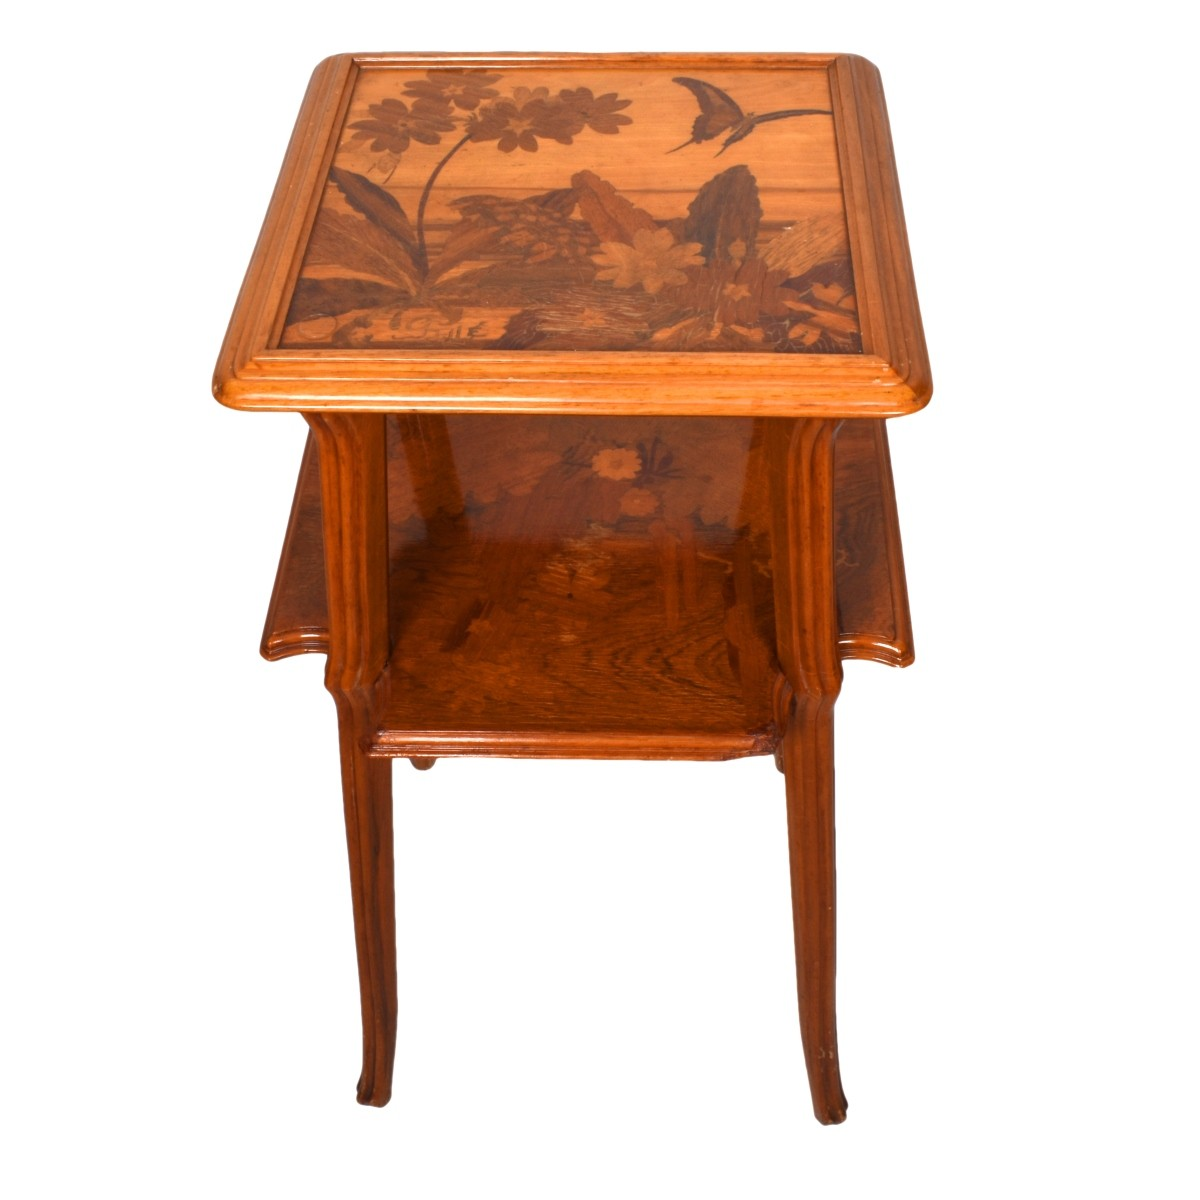 Emile Galle, French (1846-1904) Side Table